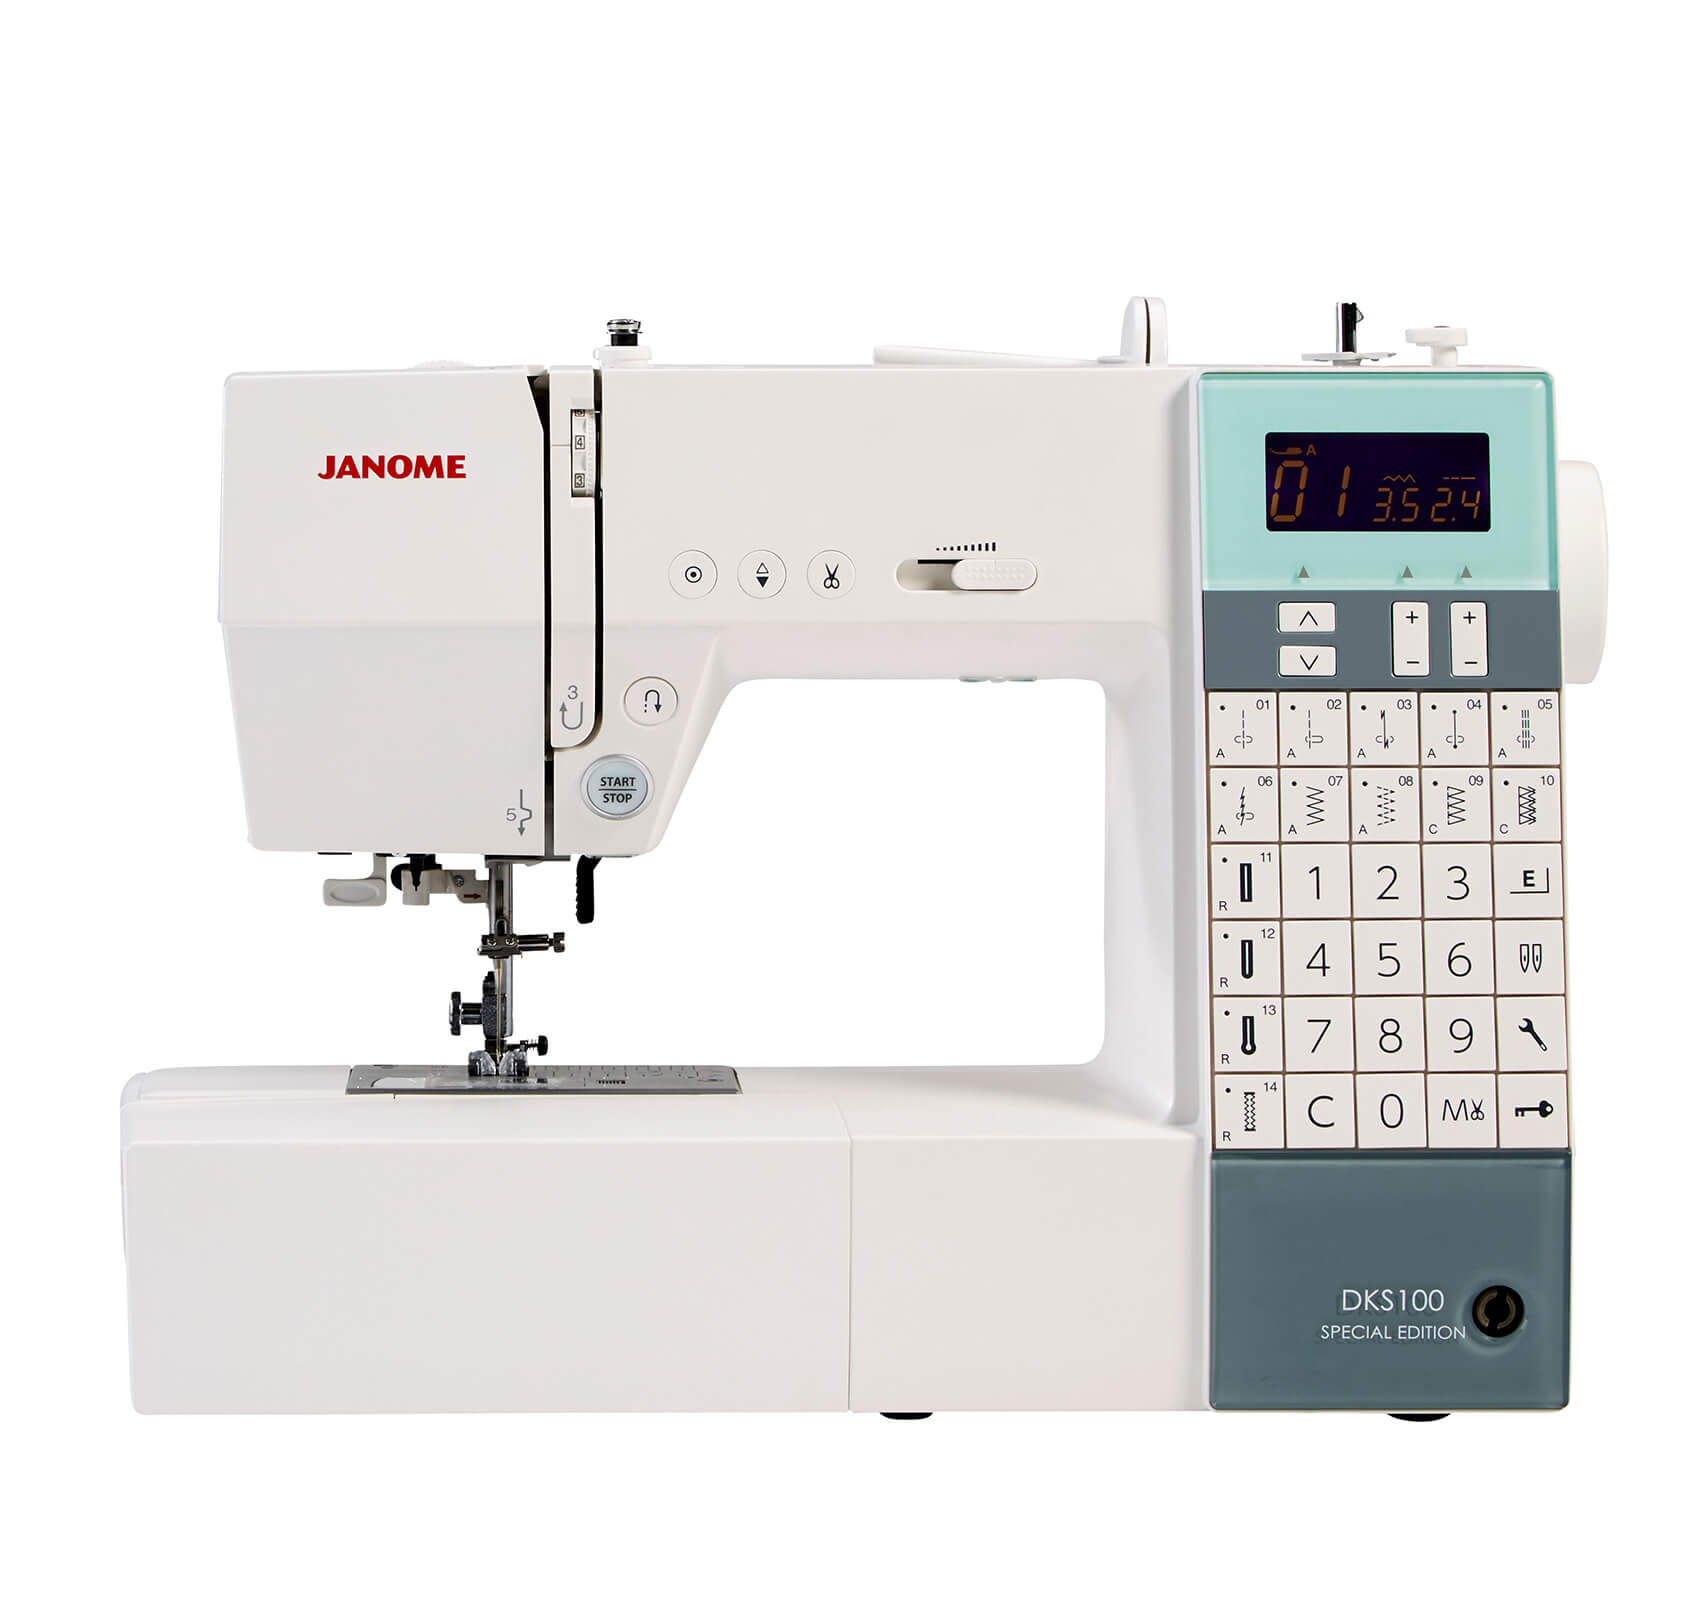 quilt picture of janome brother machine sewing quilting en